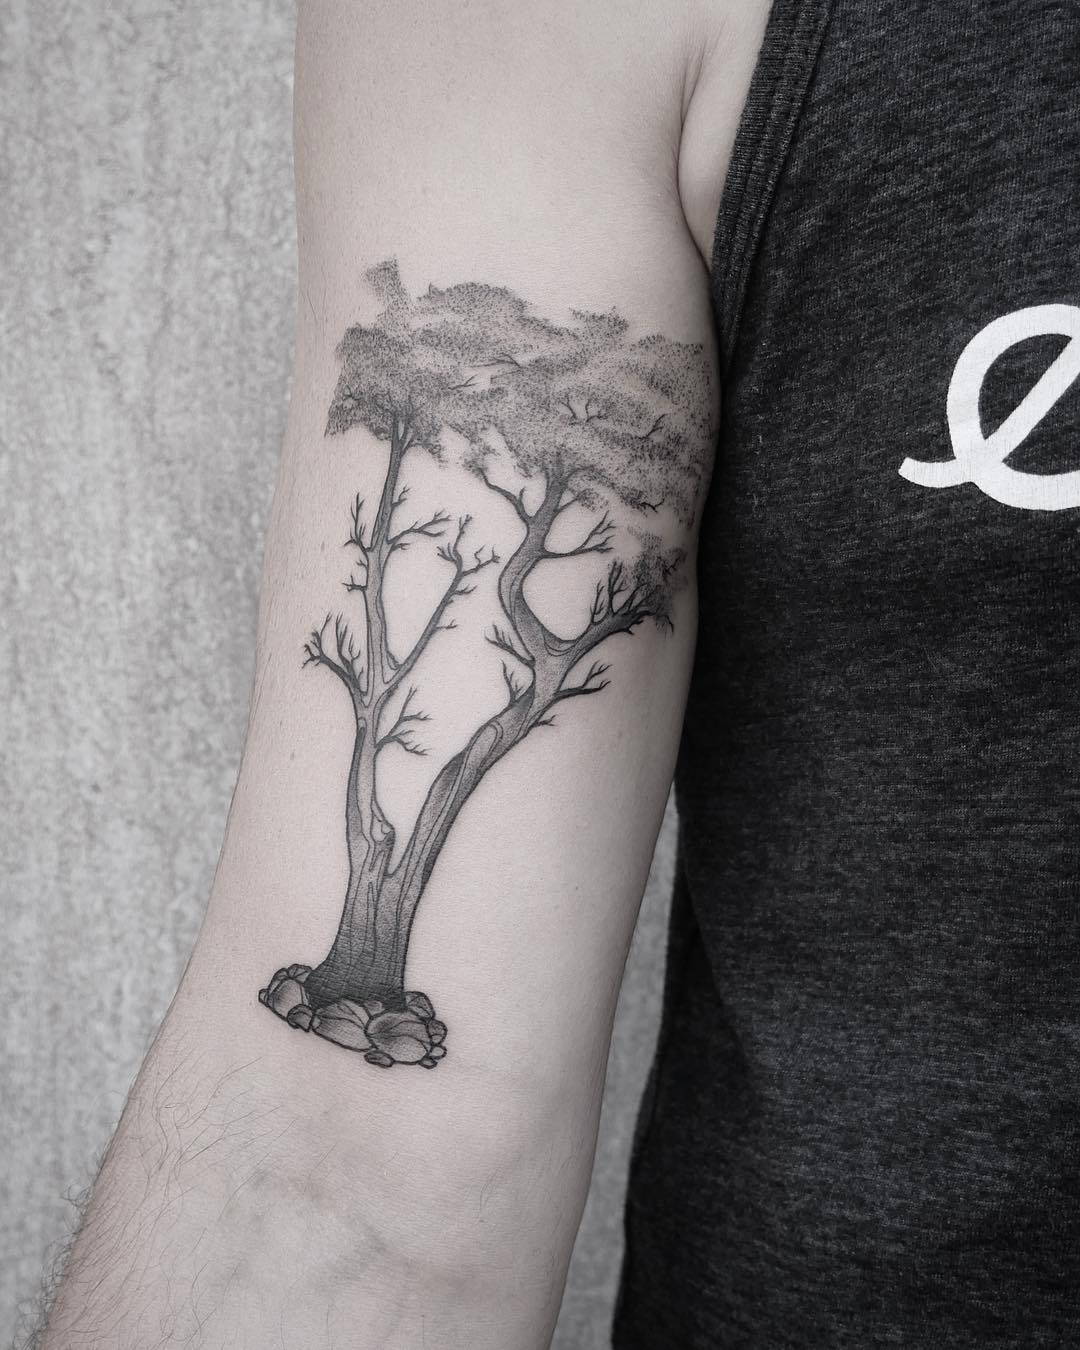 Monterey Cypress tattoo by @patcrump